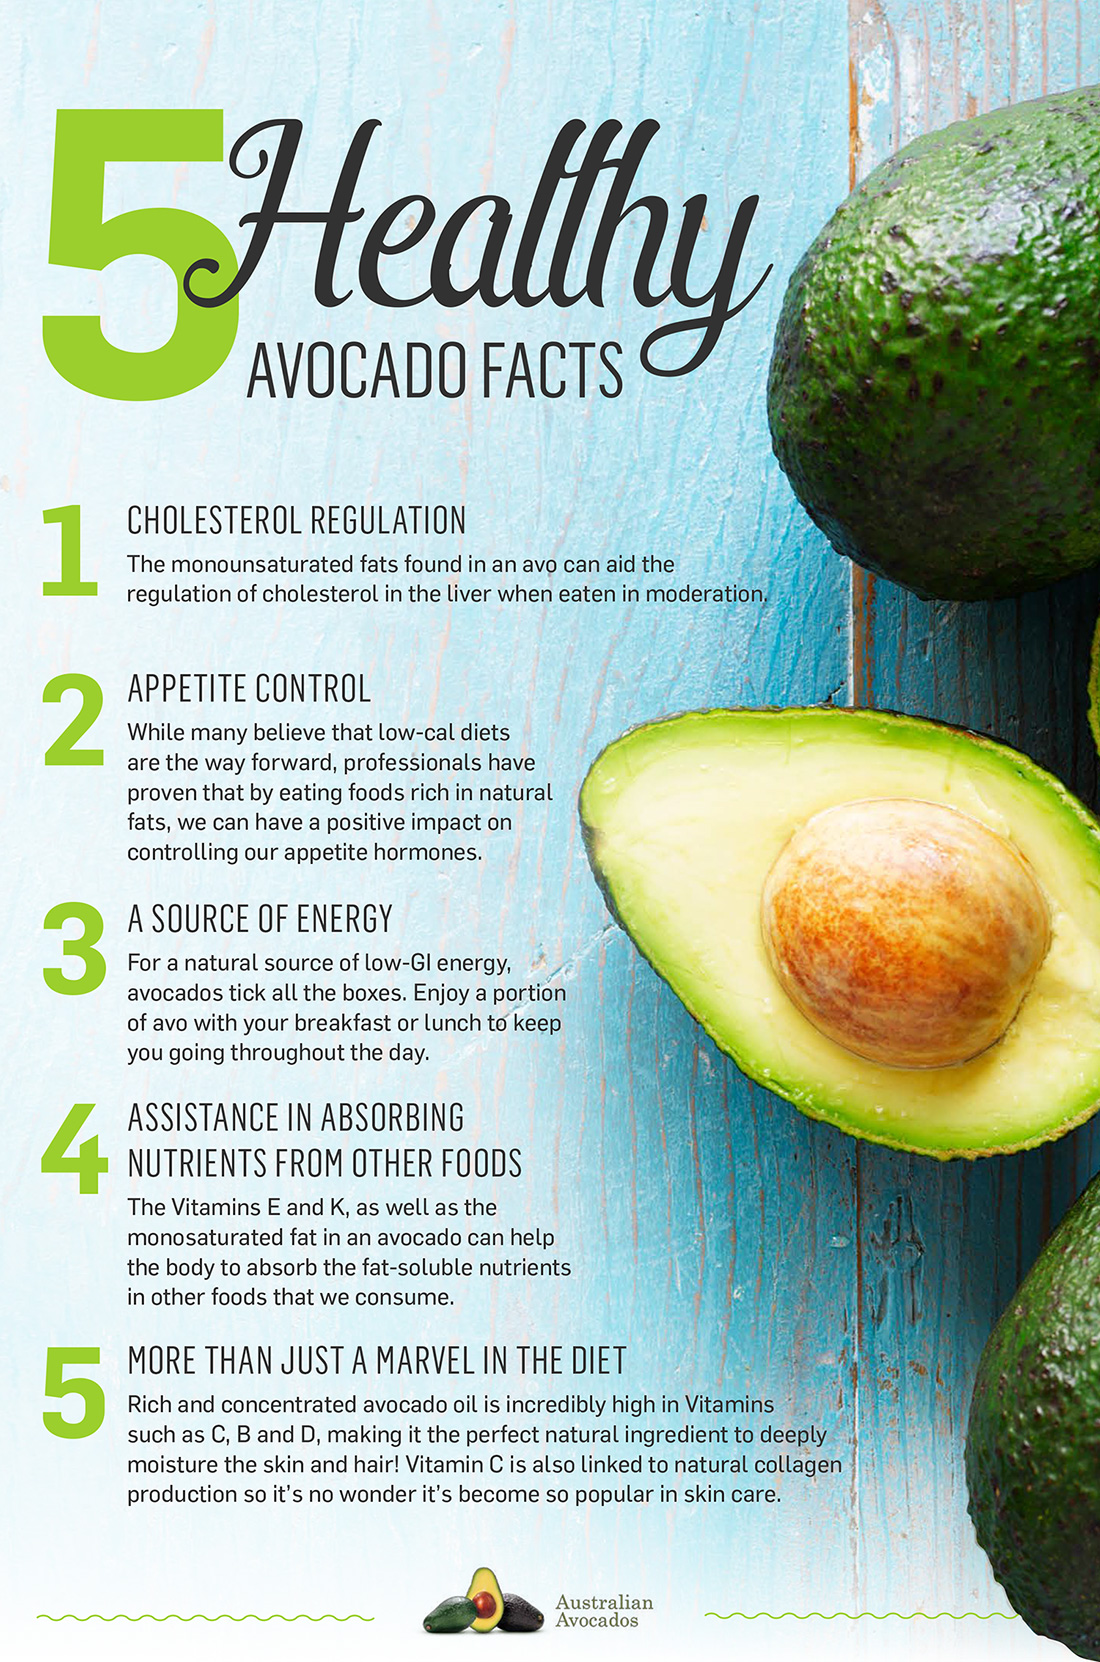 Avocado is a healthy source of fat. Learn more in this avocado infographic